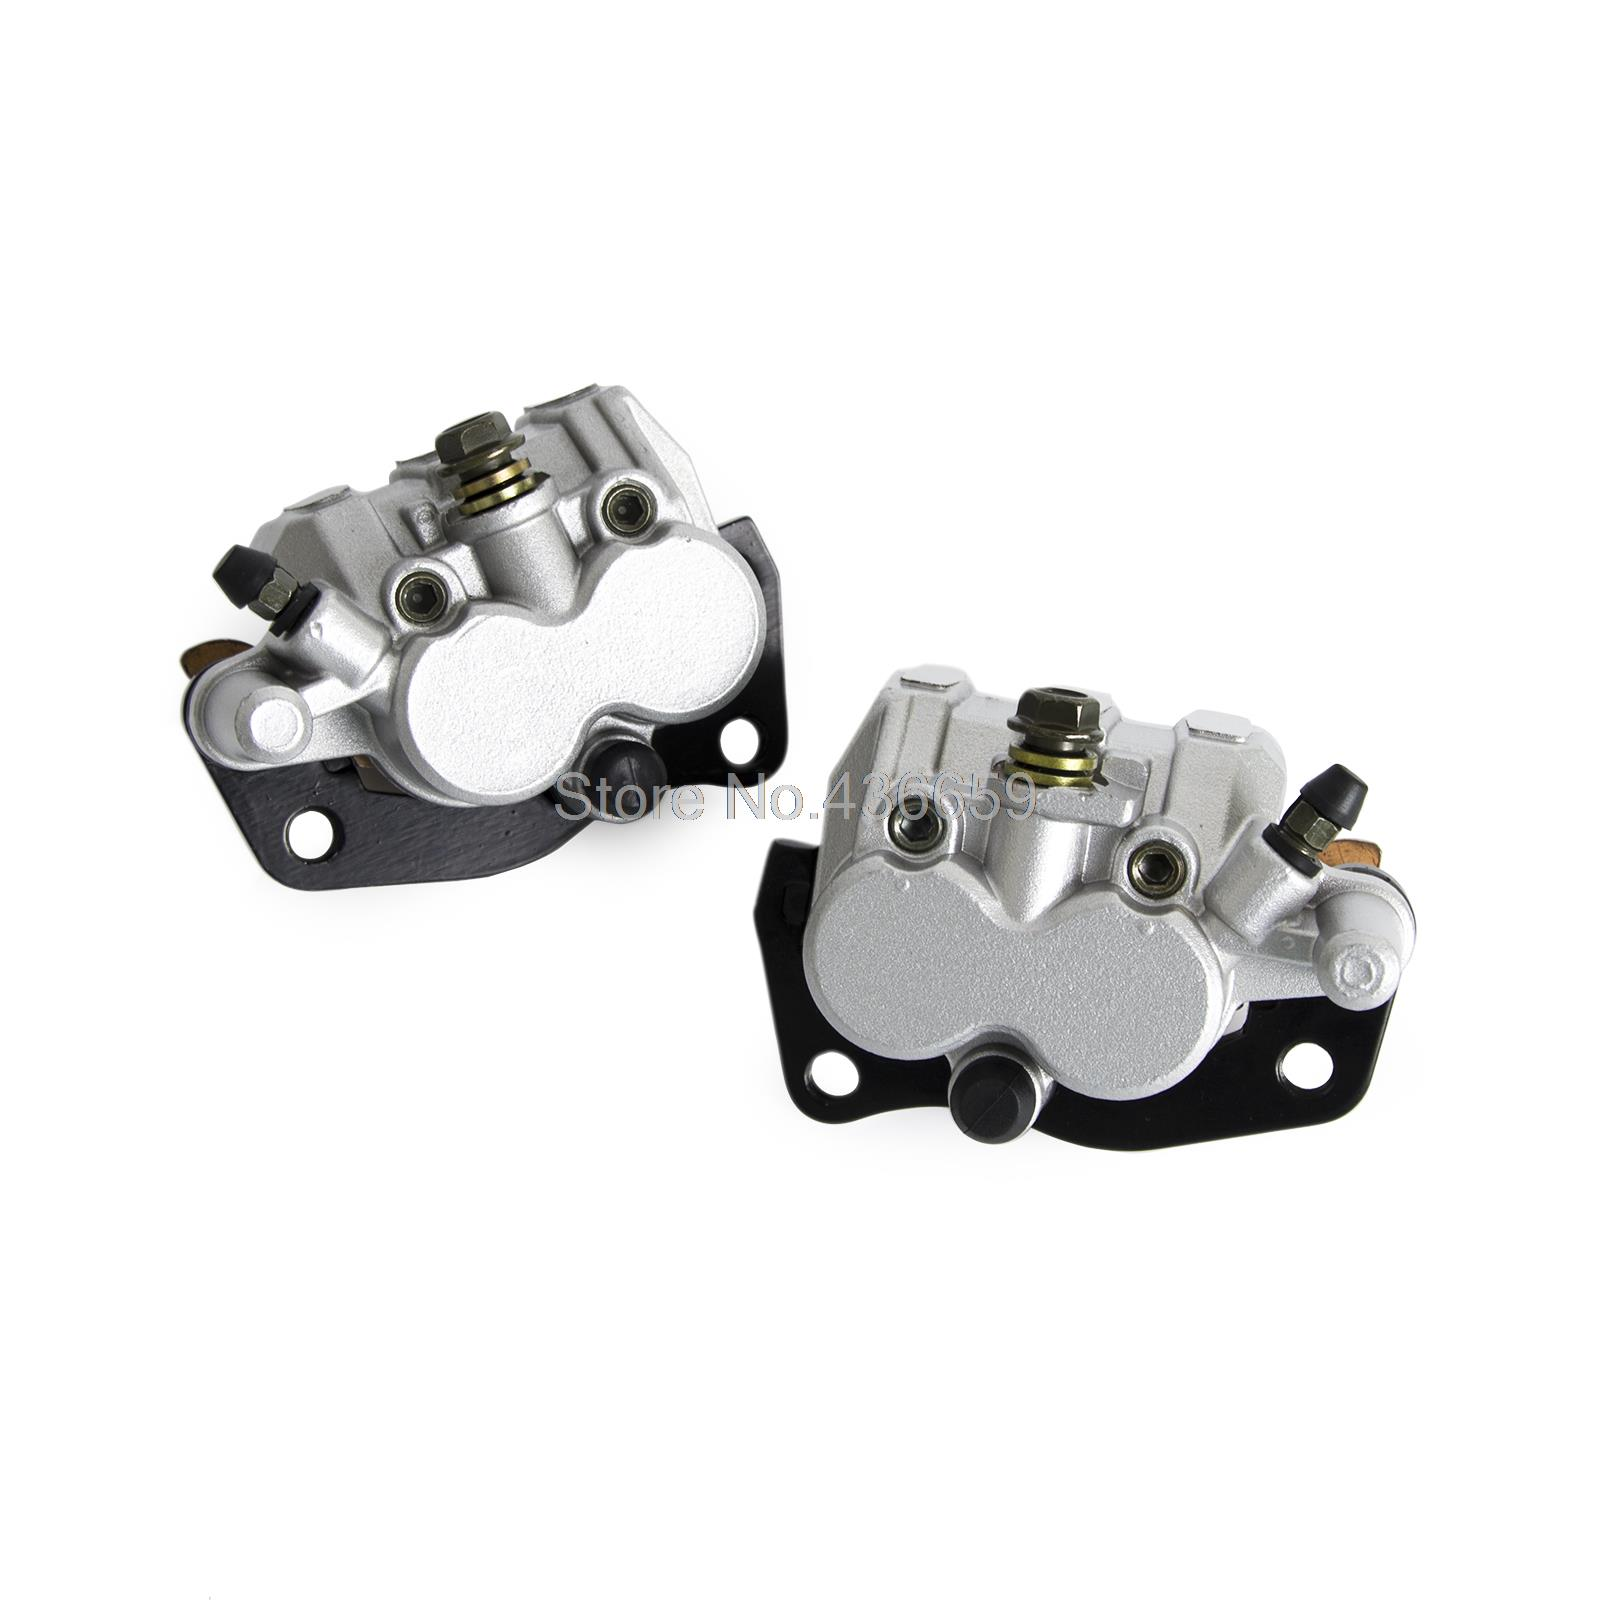 New Front Brake Caliper With Pads Fits For Yamaha UTV RHINO 660 2004 2005 2006 2007 new front brake caliper with pads fits for yamaha utv rhino 660 2004 2005 2006 2007